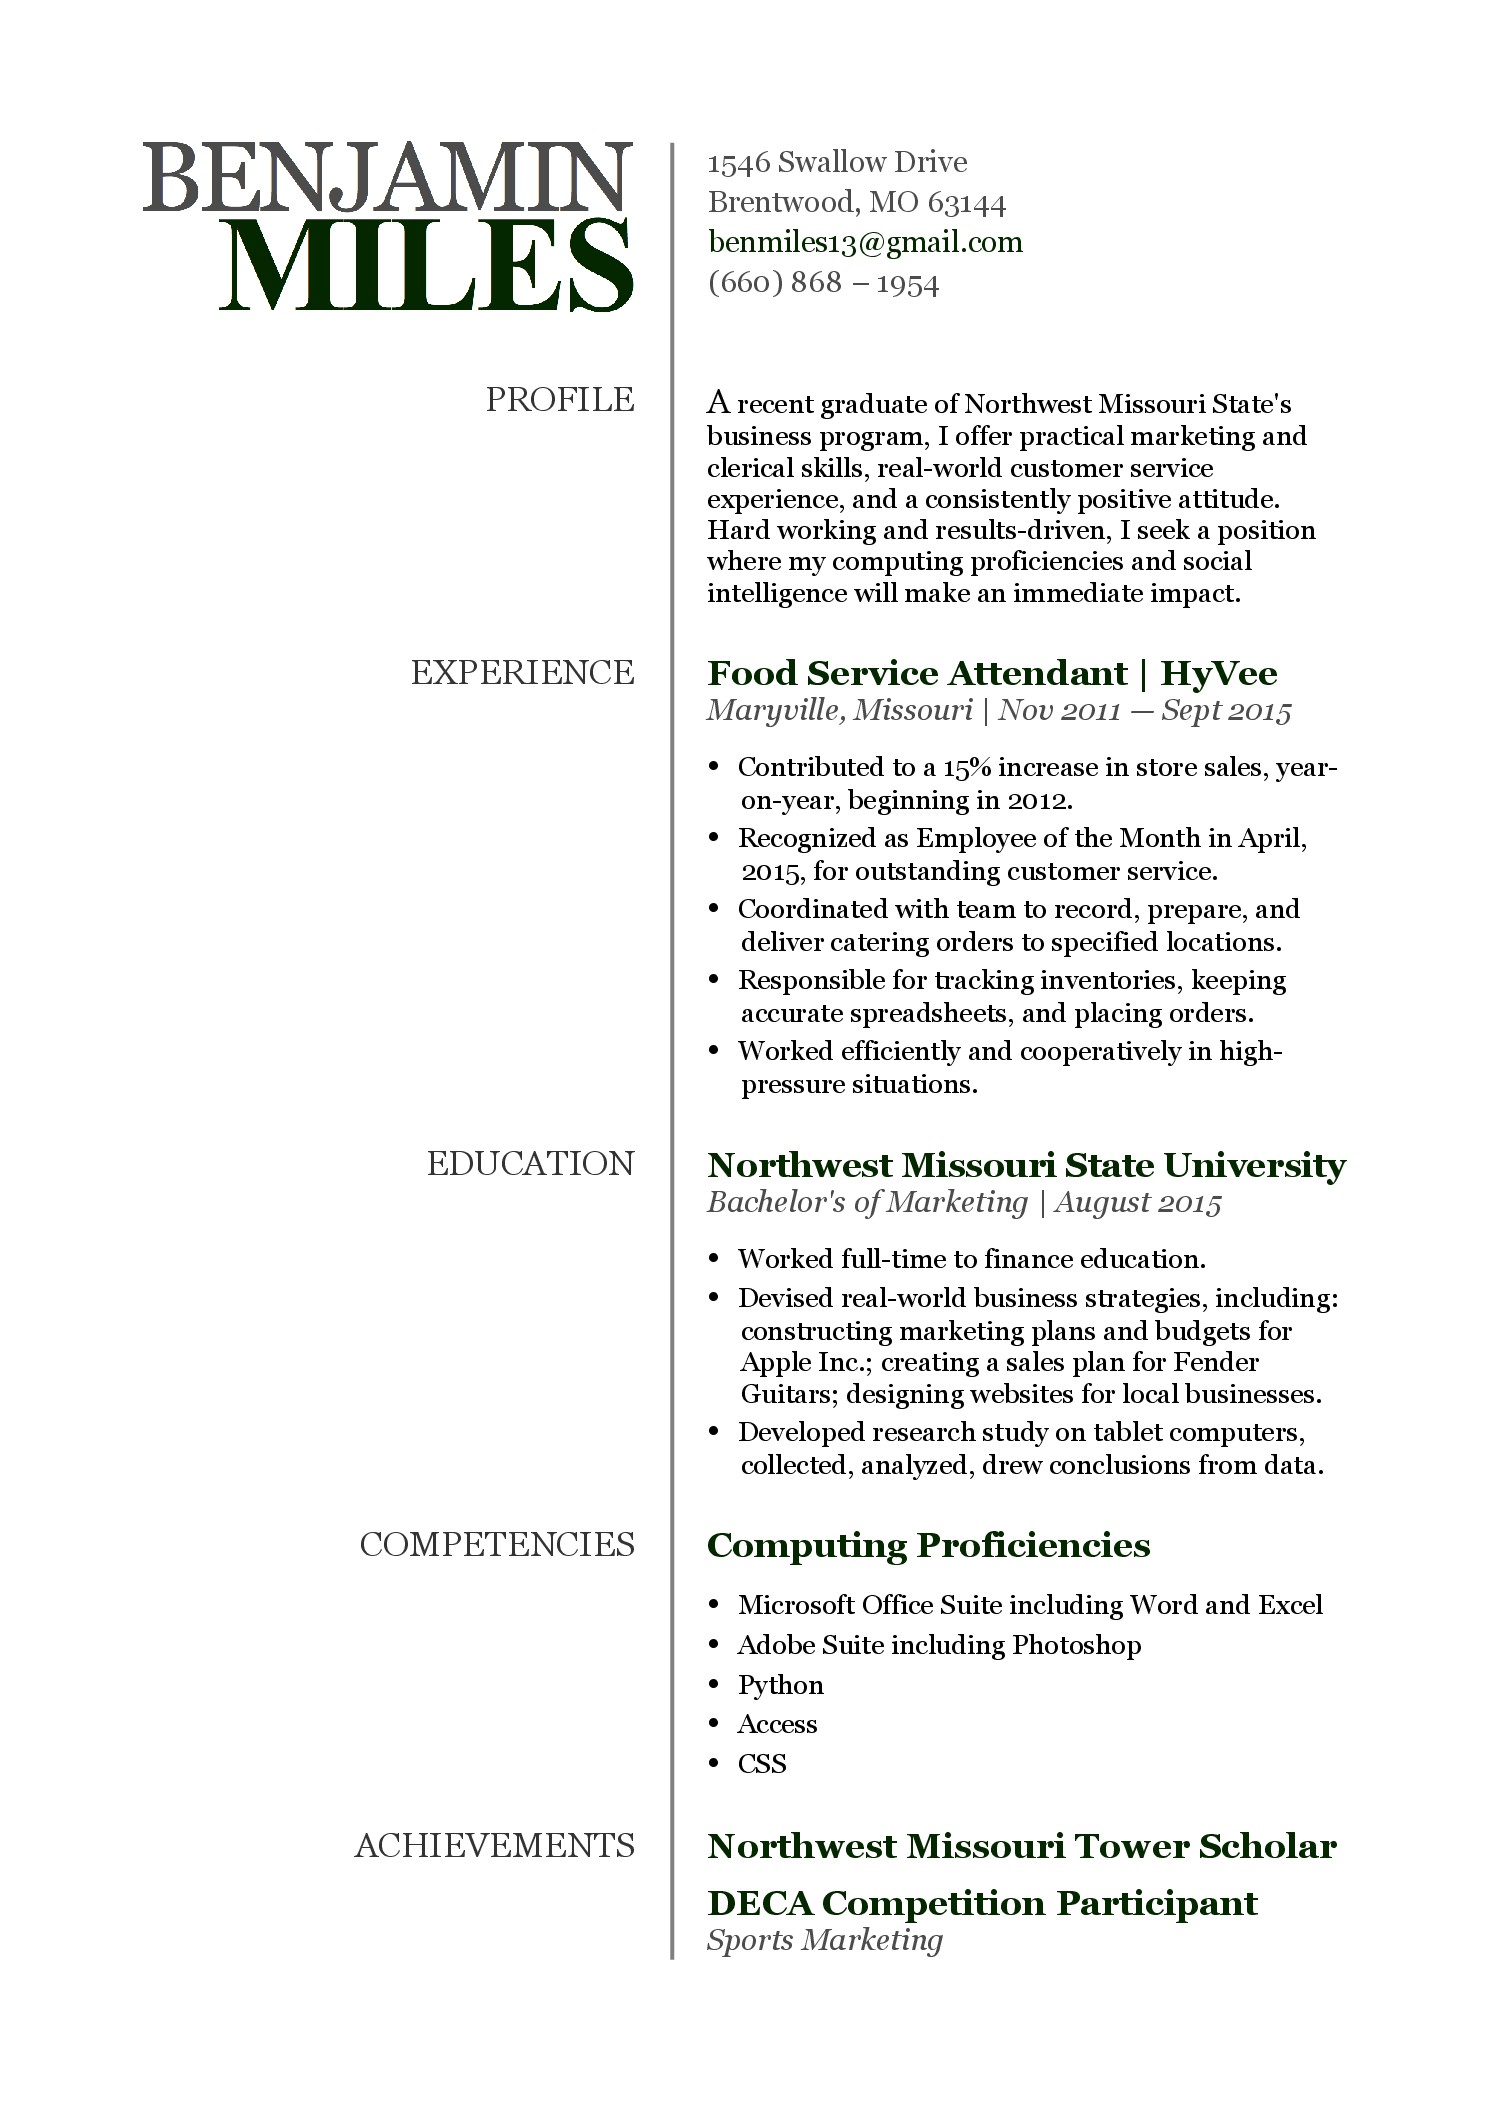 resume lance writer examples lance writer editor resume samples visualcv resume samples visualcv modern professional resume templates by canva black